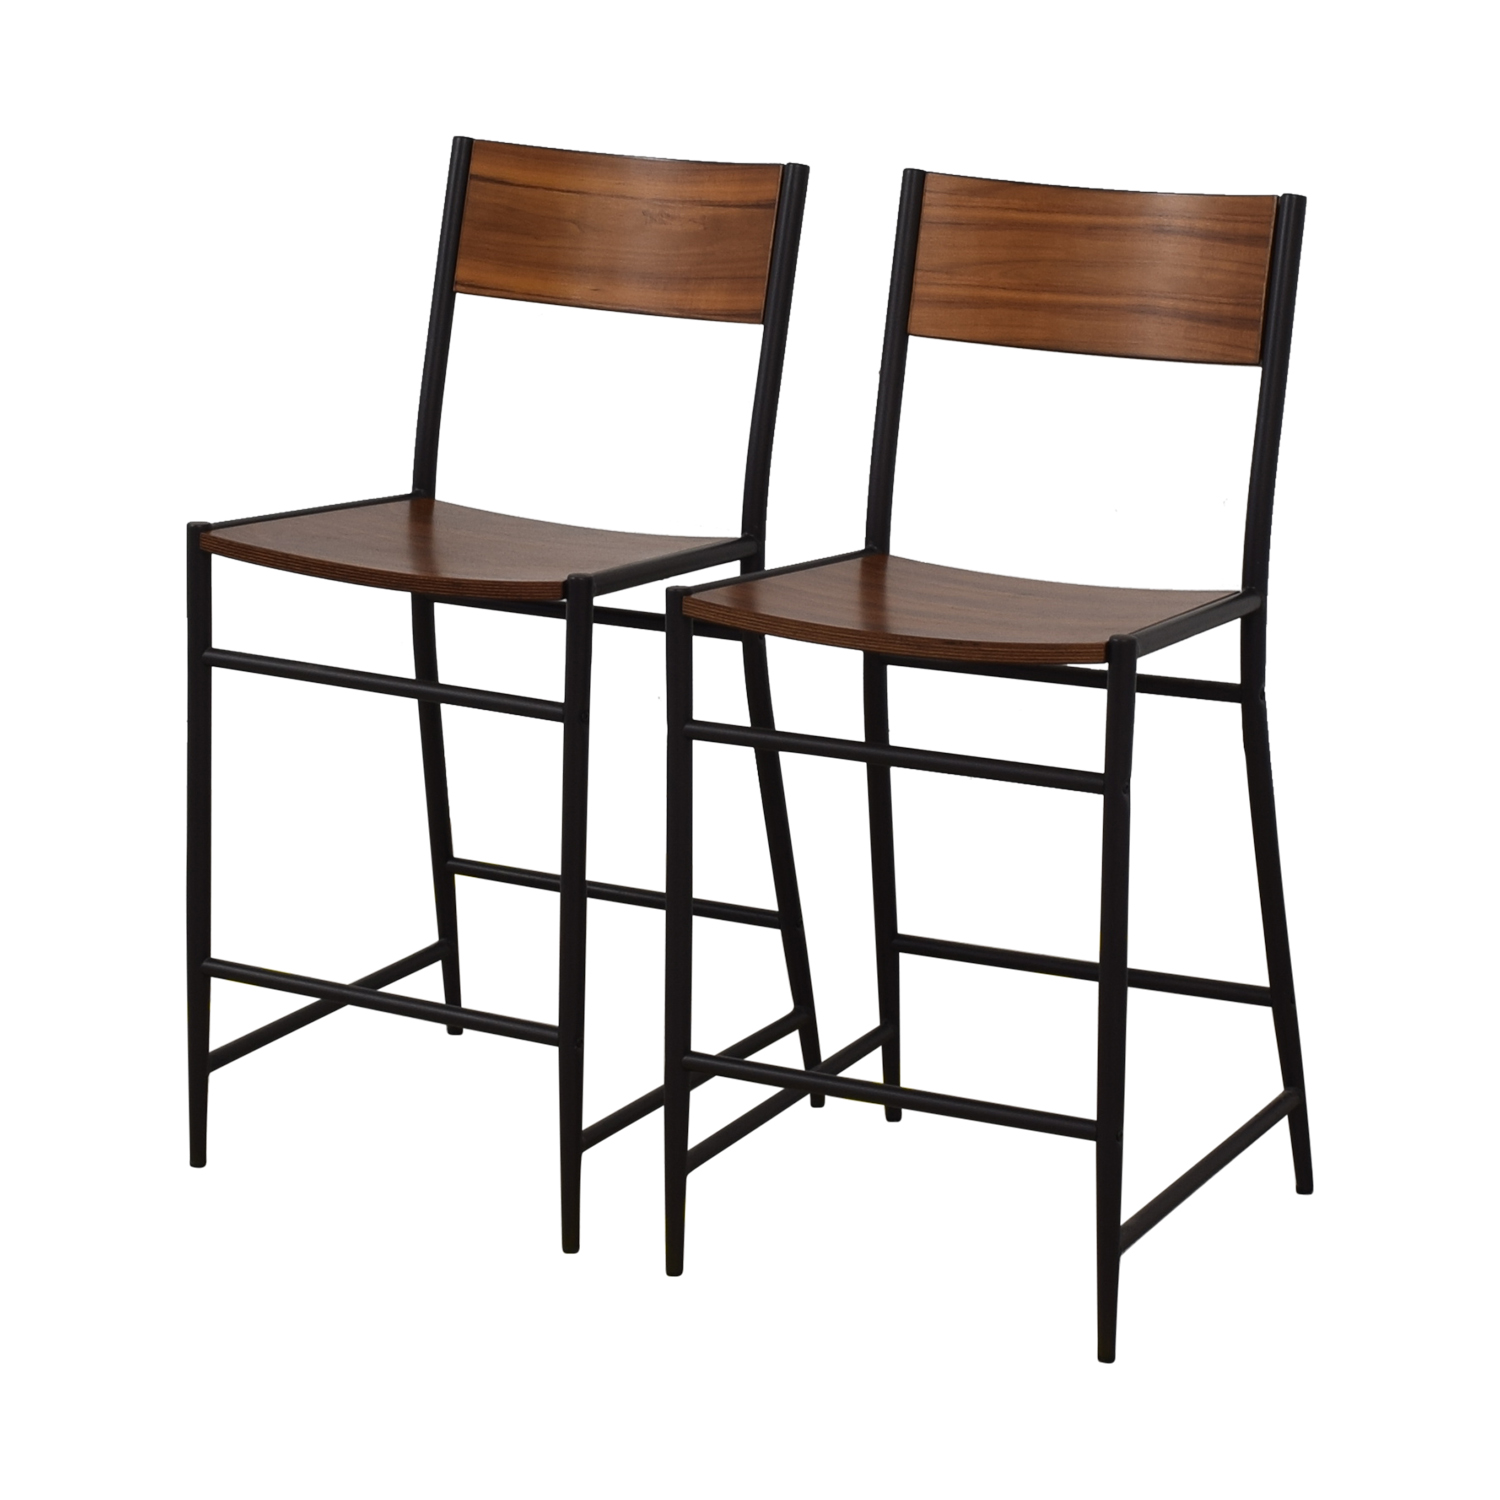 West Elm West Elm Acacia Counter Stools used